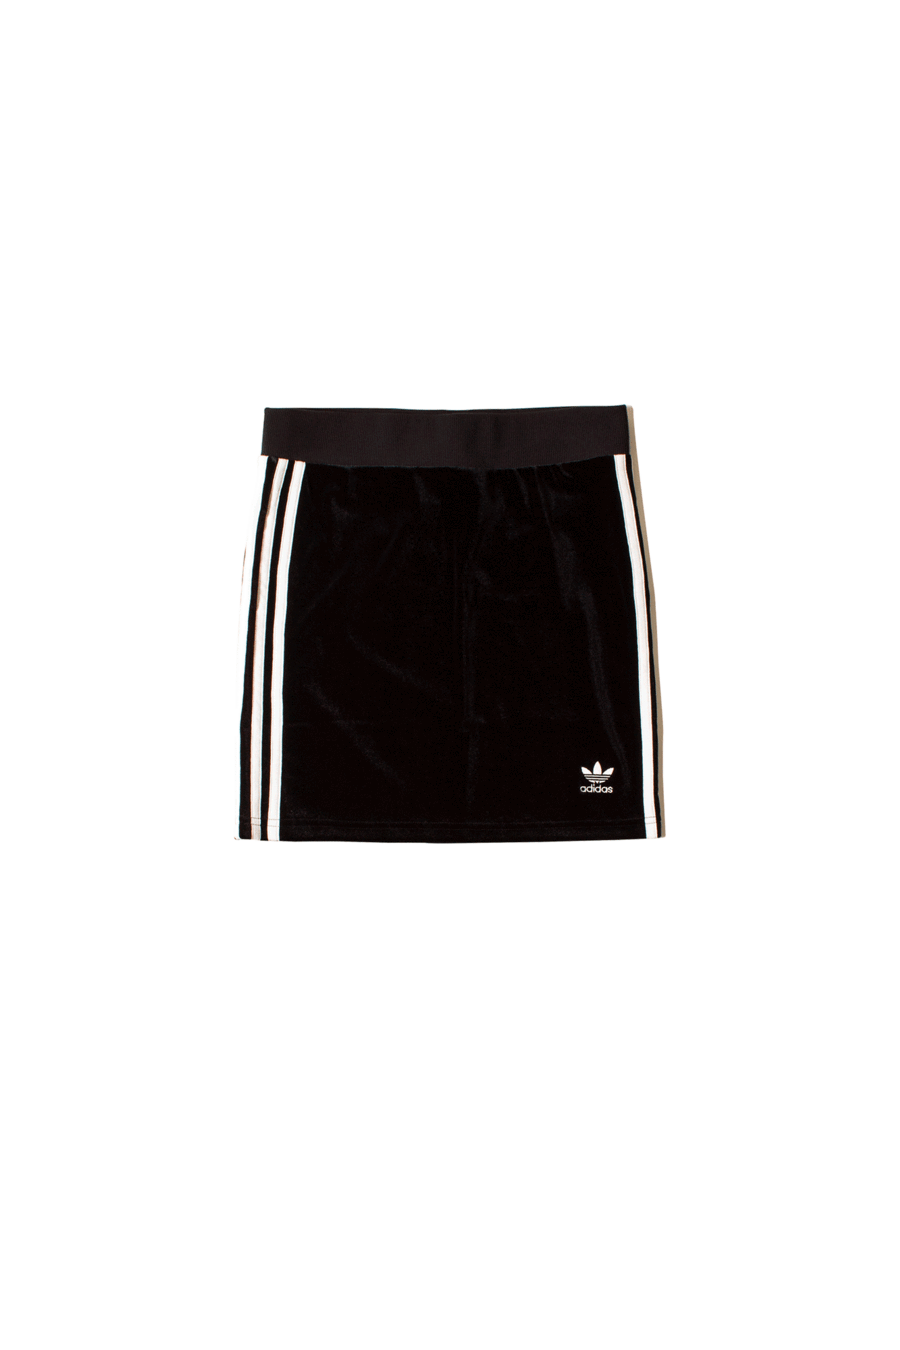 Adidas Originals Skirts 3 Str Skirt Black DV2628#000#C0010#40 - One Block Down